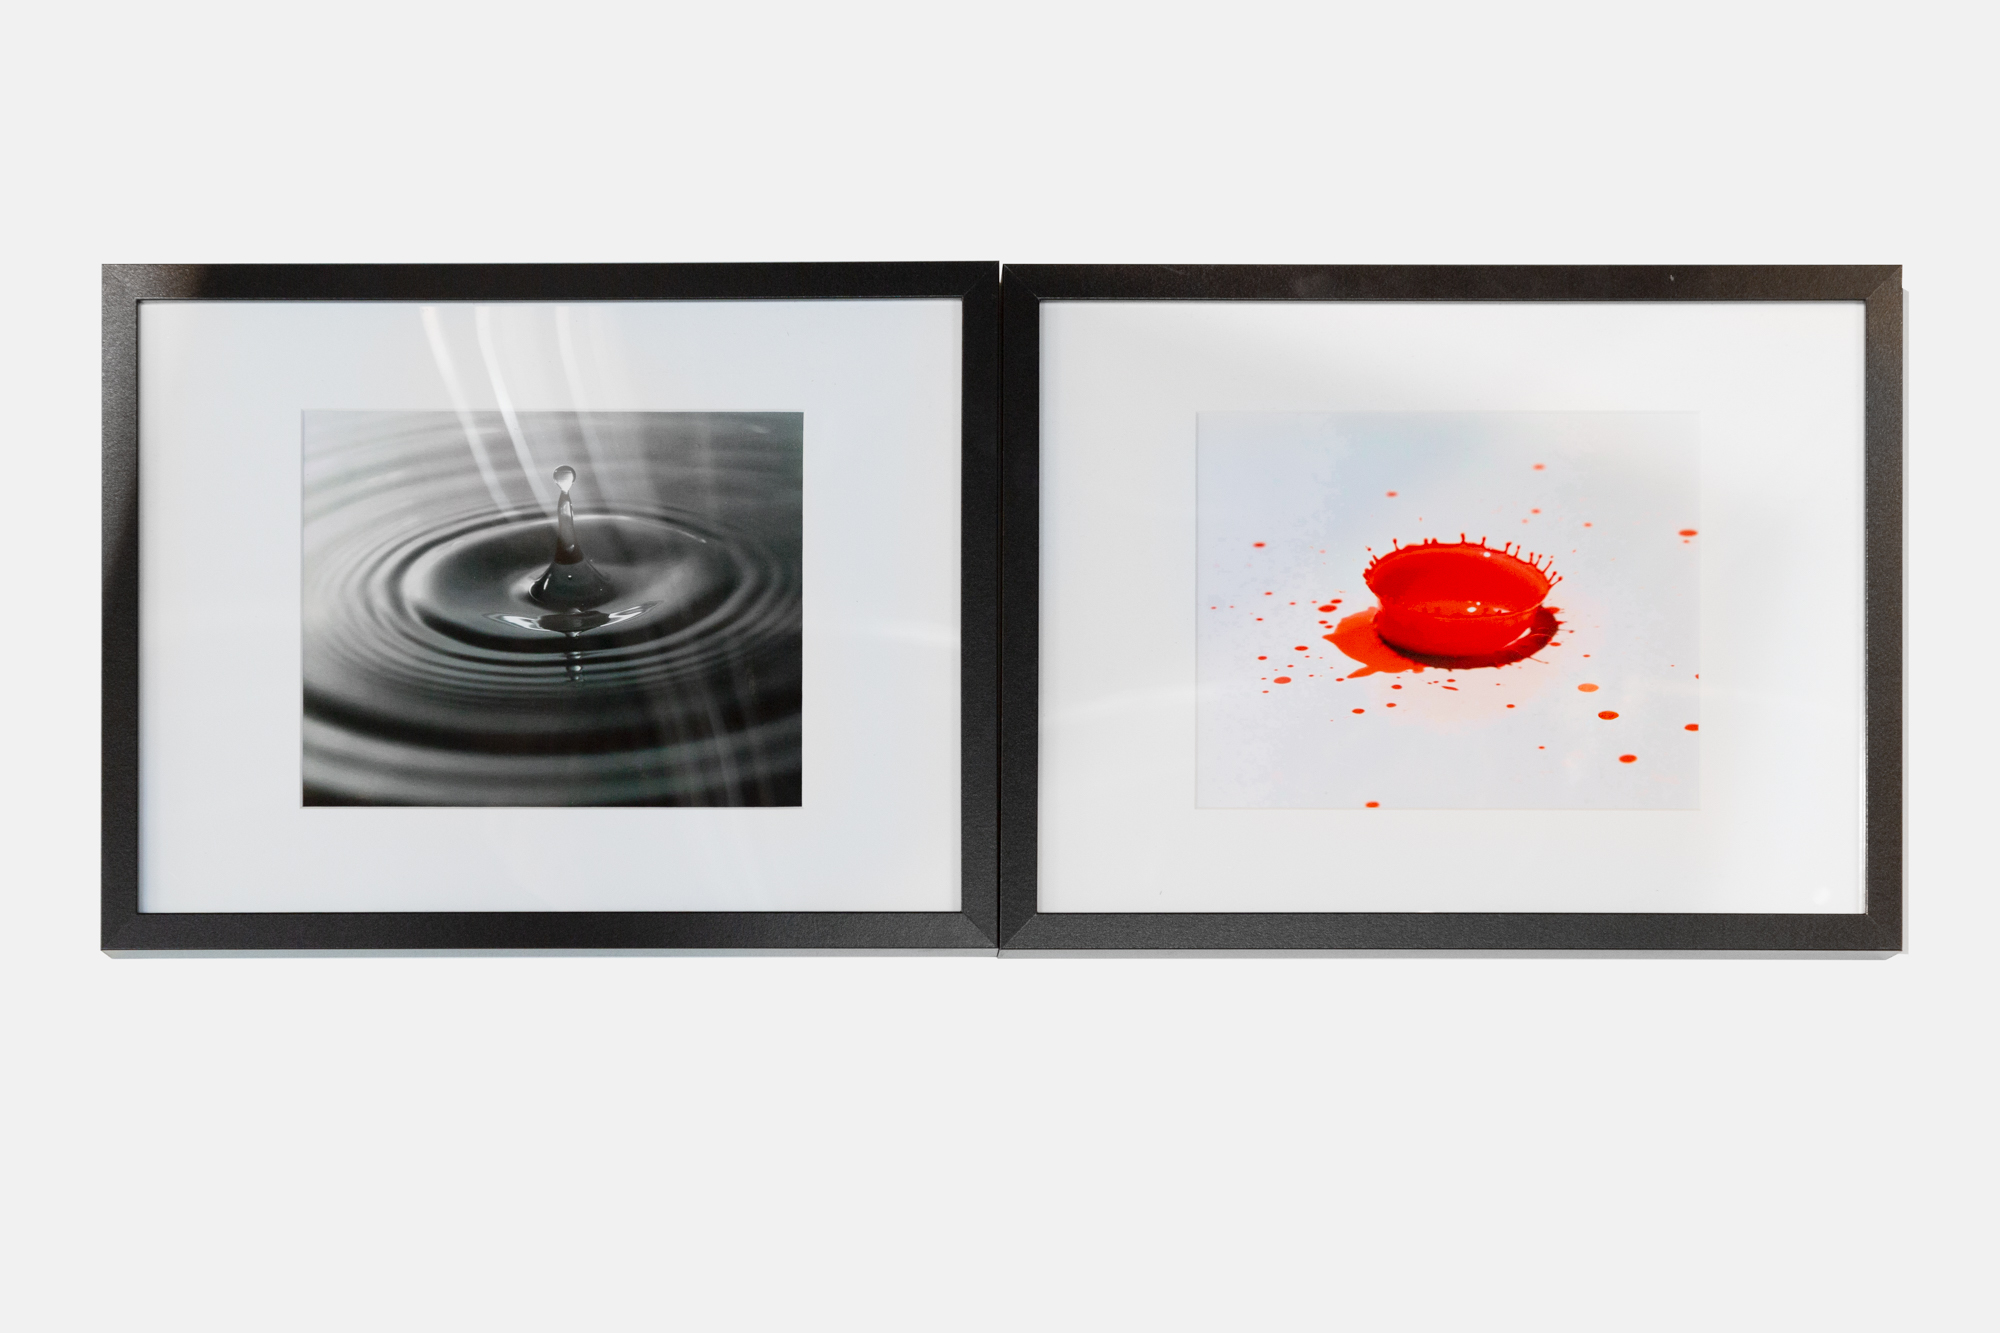 Water Drop  photograph, 2018   Paint Drop  photograph, 2018  installation photo by Mel Carter